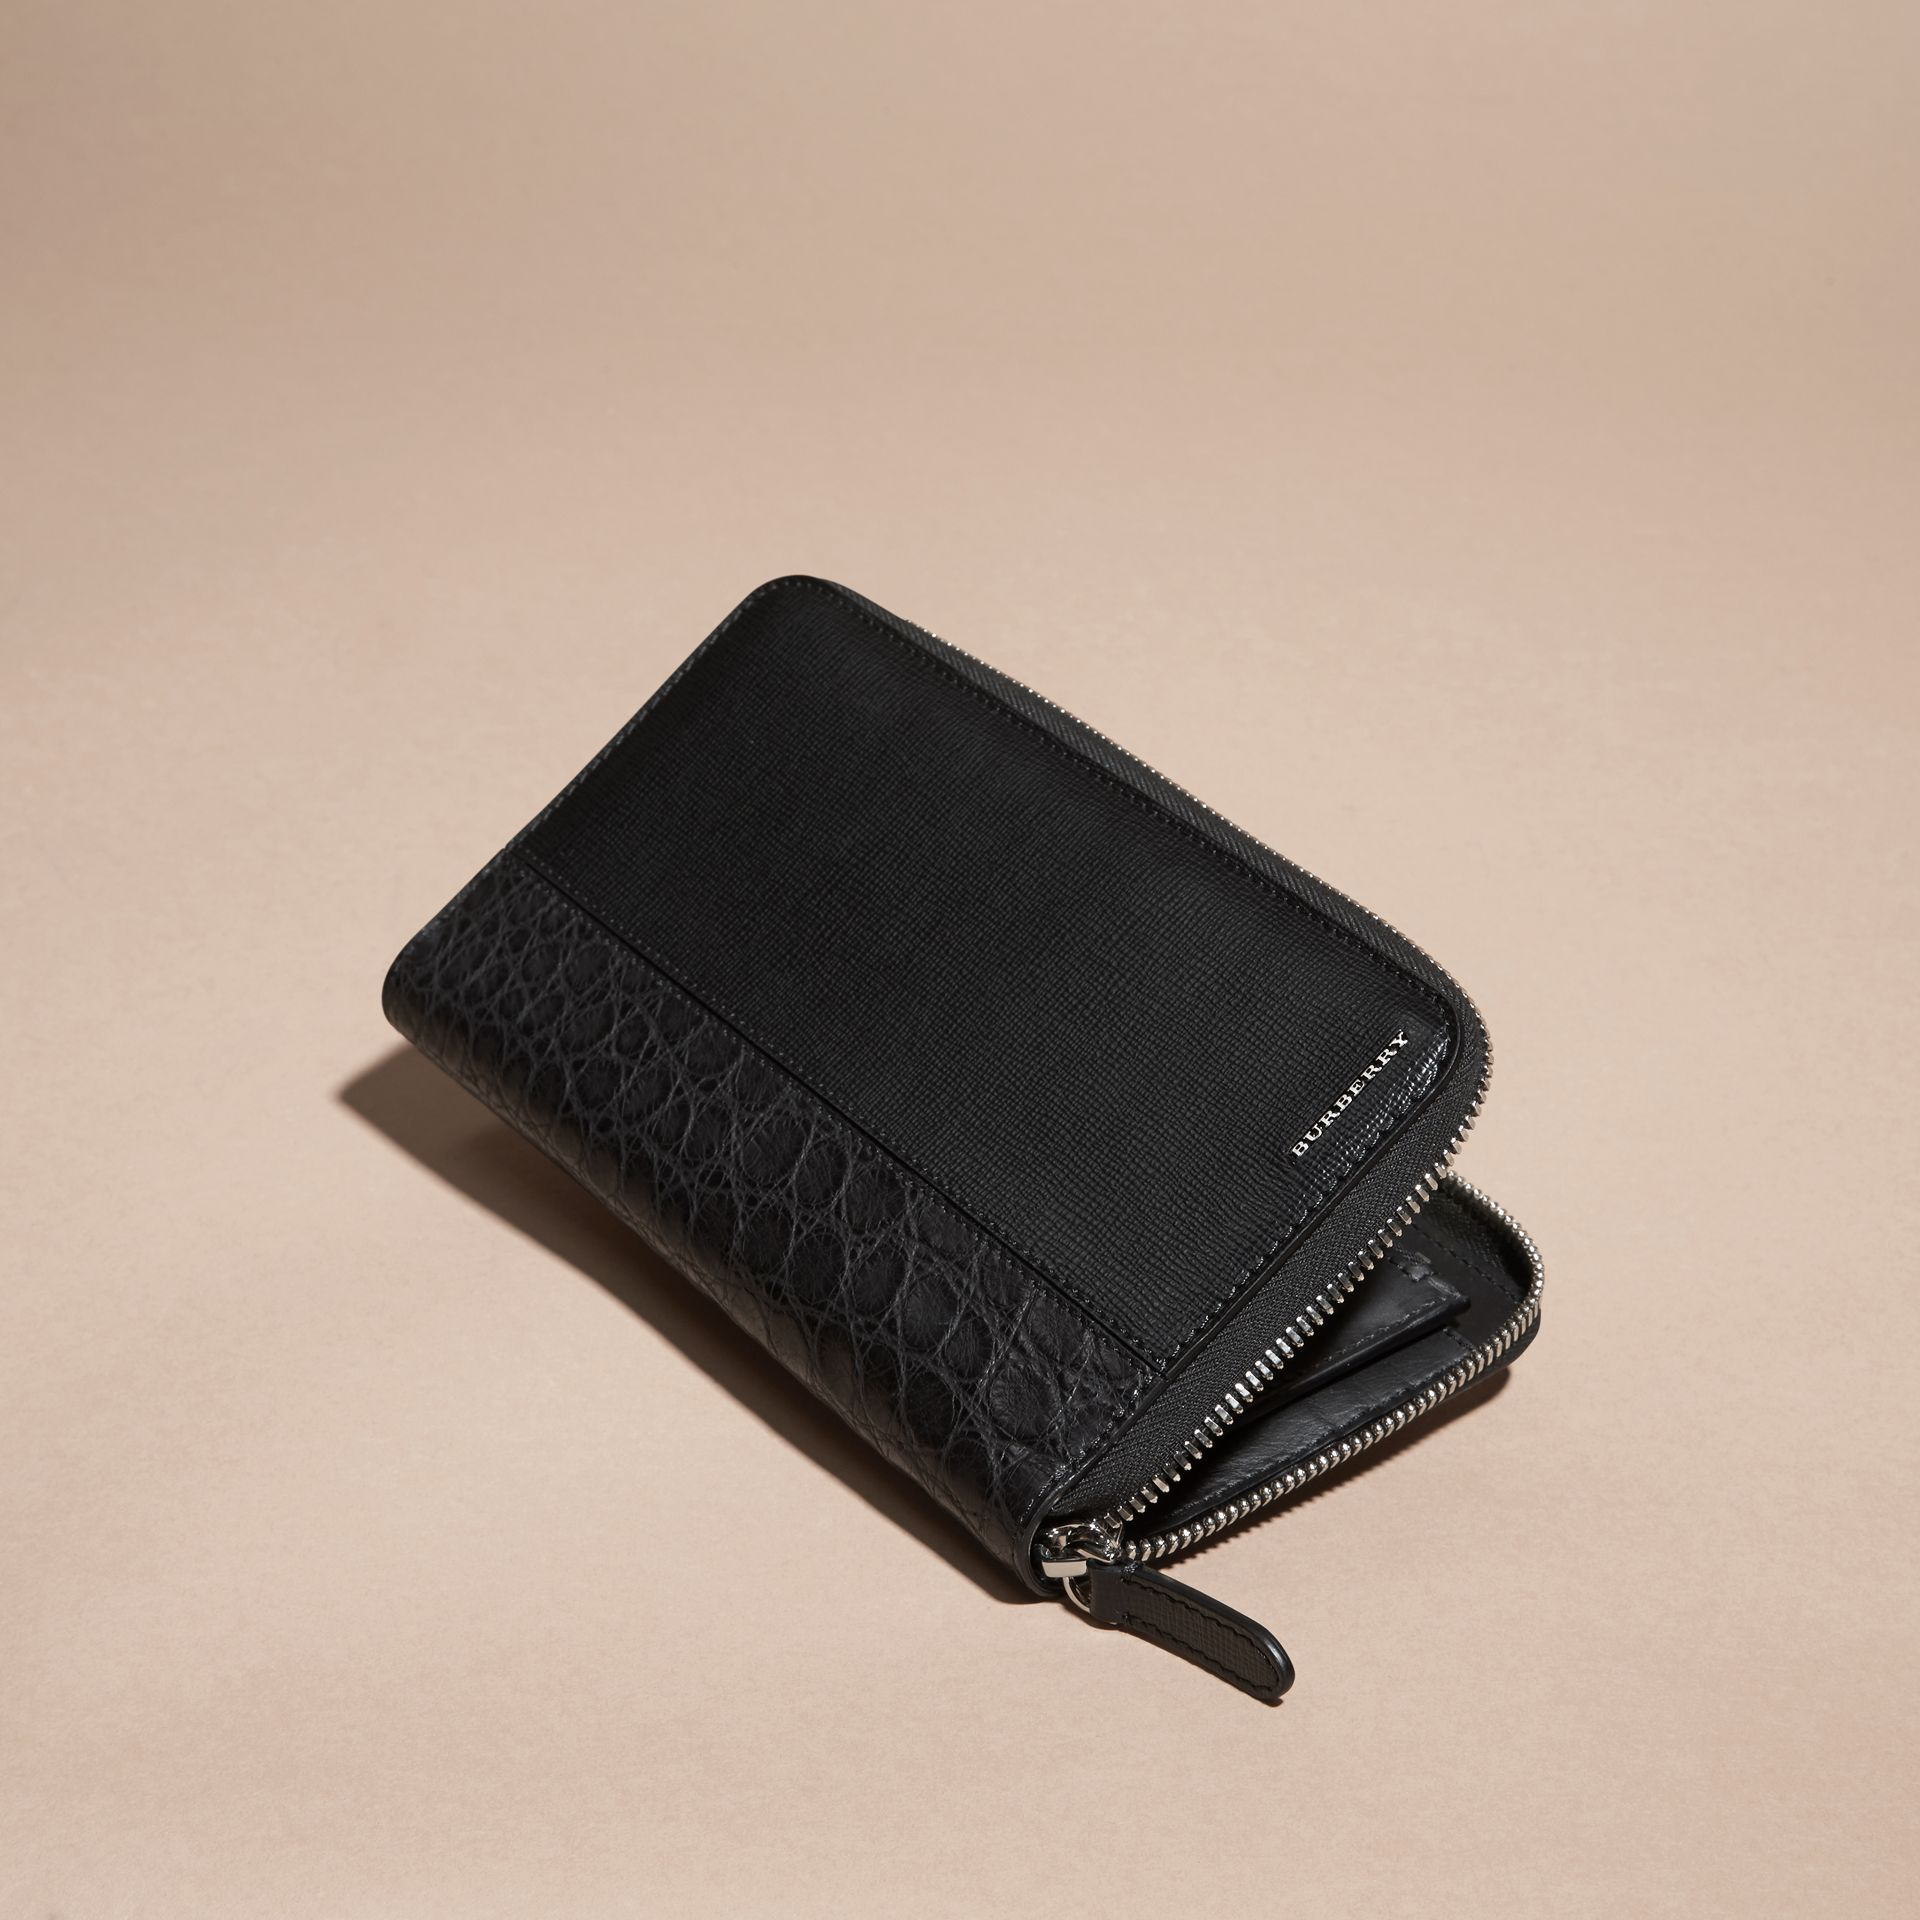 London Leather and Alligator Ziparound Wallet in Black - Men | Burberry Singapore - gallery image 3